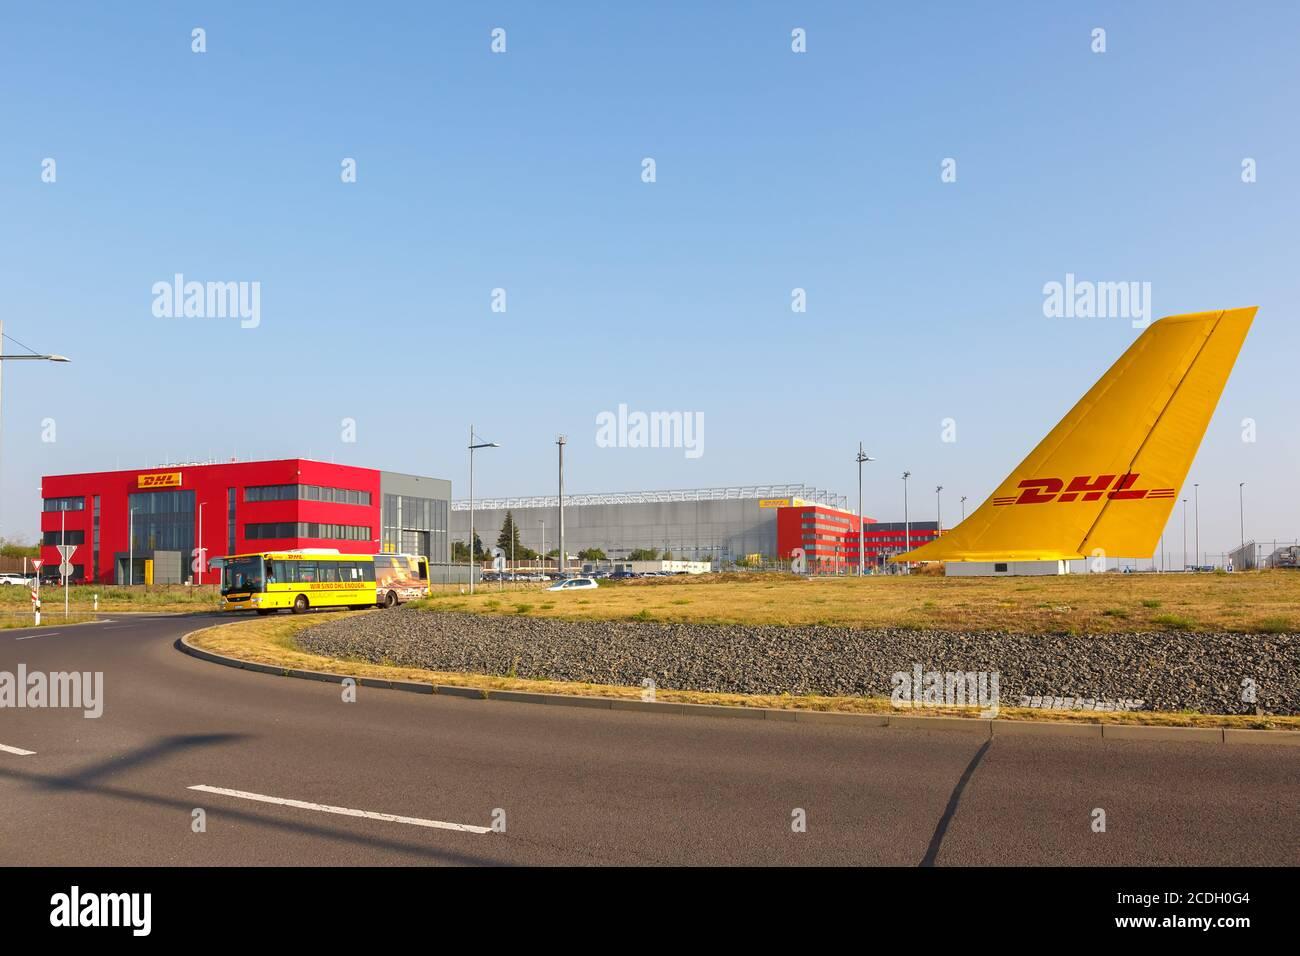 Leipzig Germany August 19 2020 Dhl Hub At Leipzig Halle Lej Airport Airplane Aircraft Tail In Germany Stock Photo Alamy